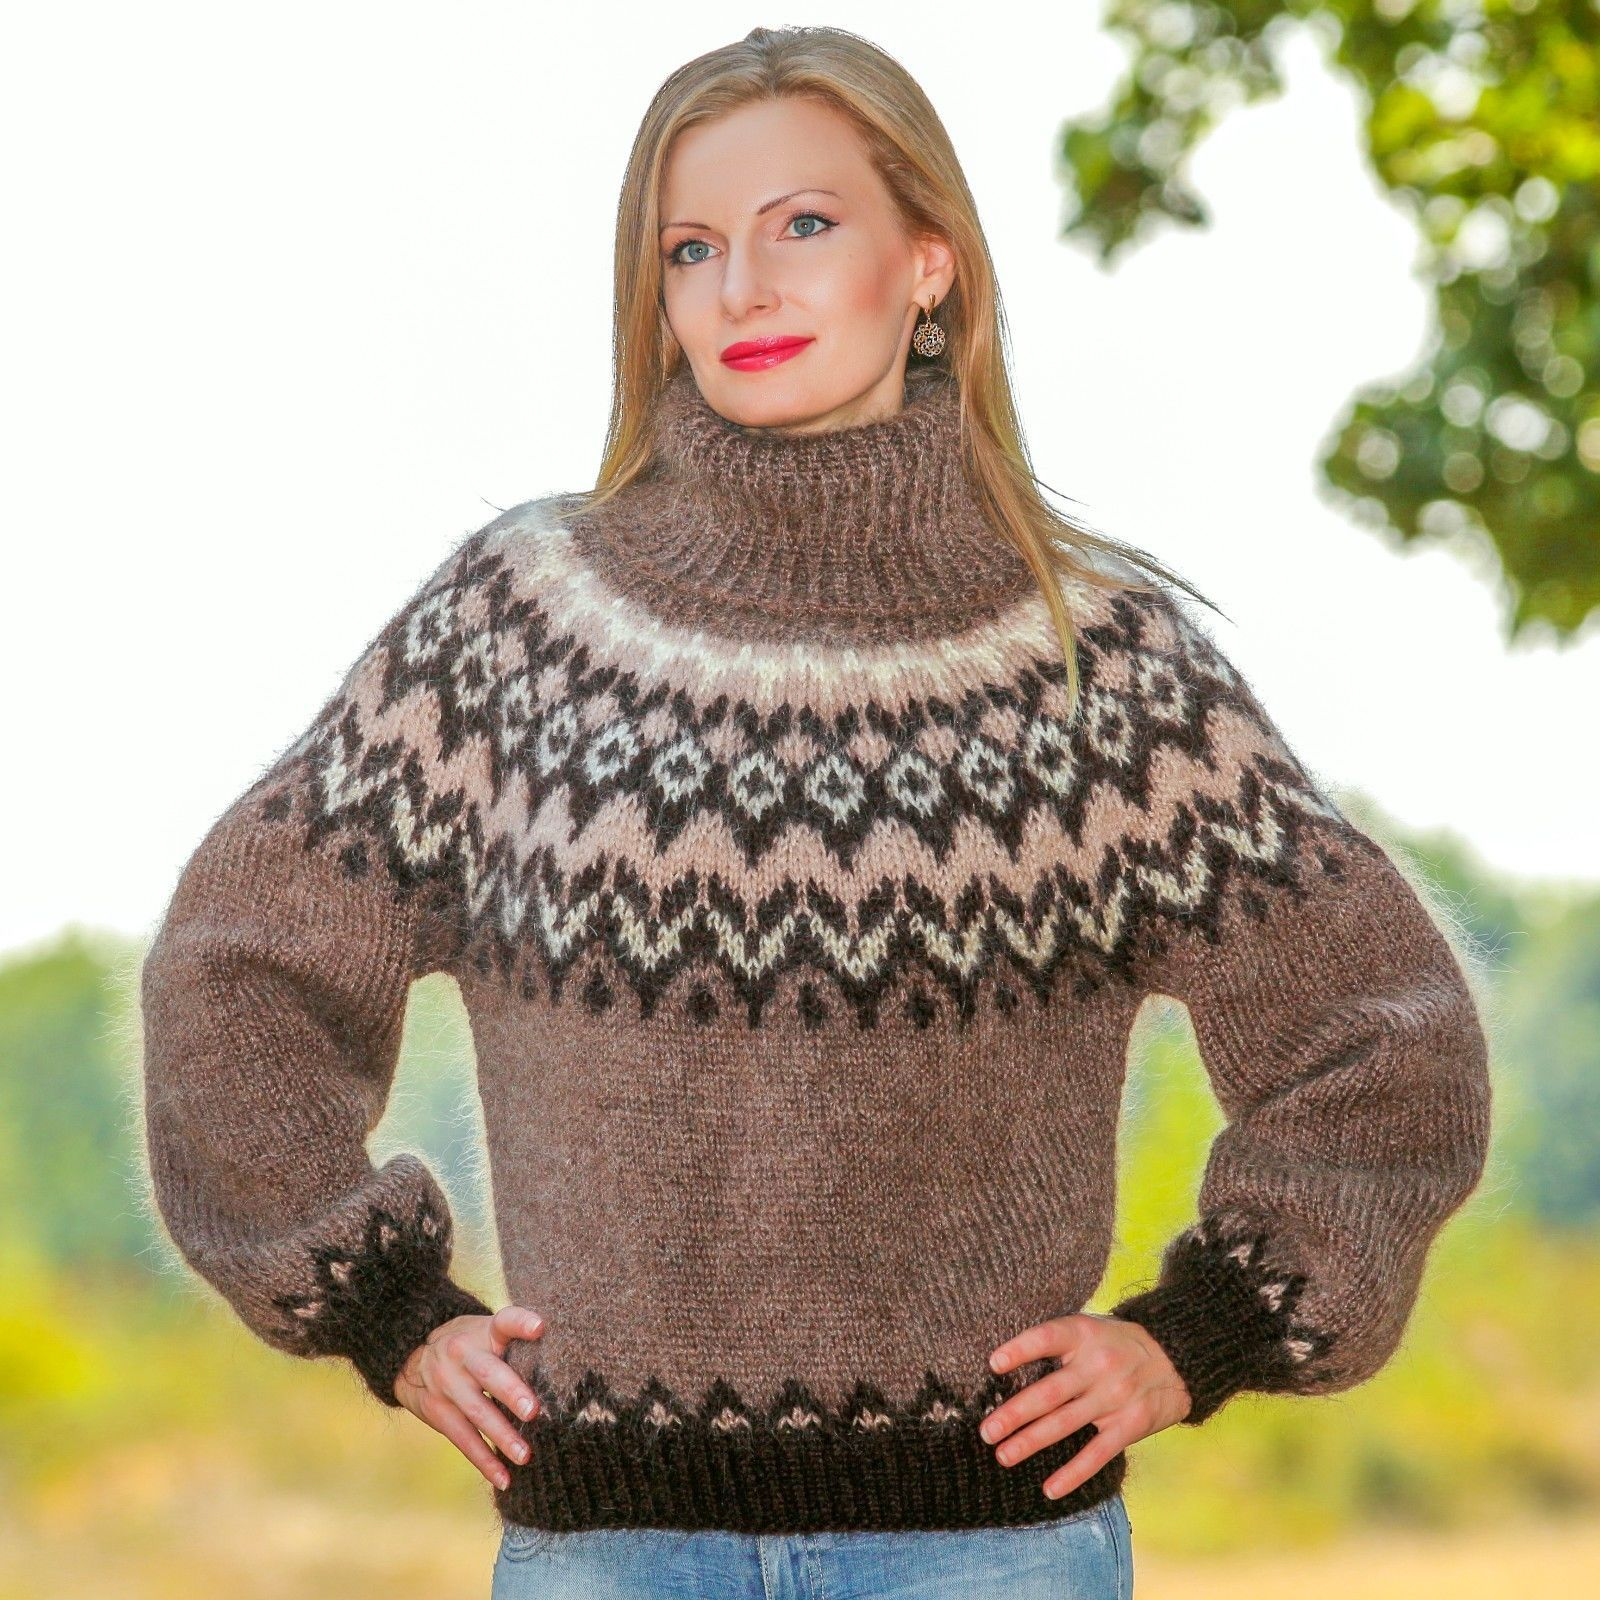 SUPERTANYA BROWN Hand Knitted Sweater Icelandic Fuzzy Nordic Mohair ...